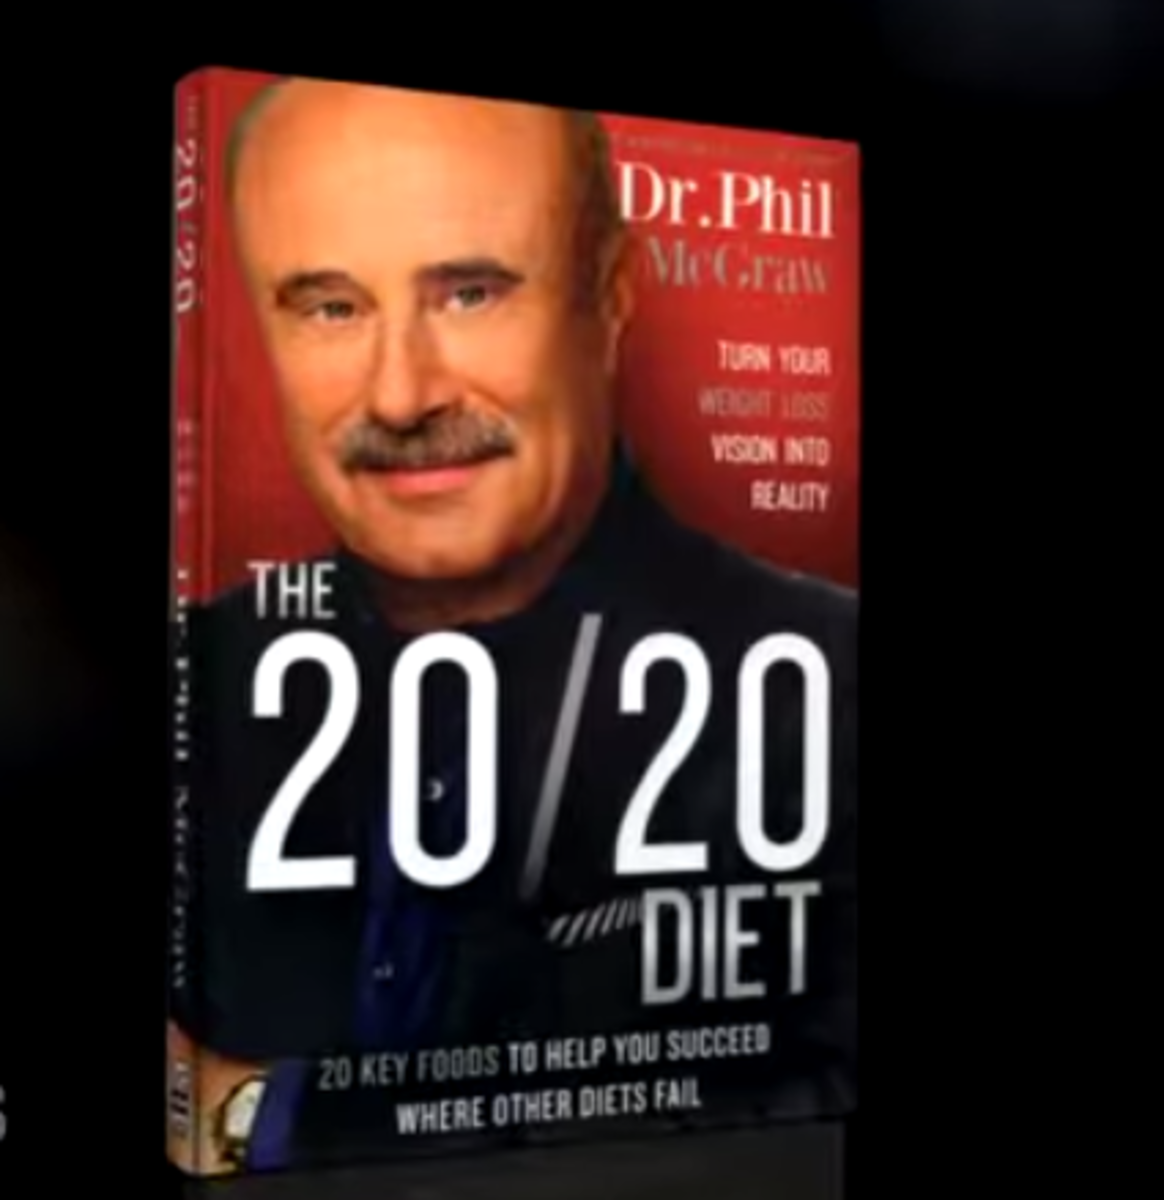 Dr. Phil Diet Plan